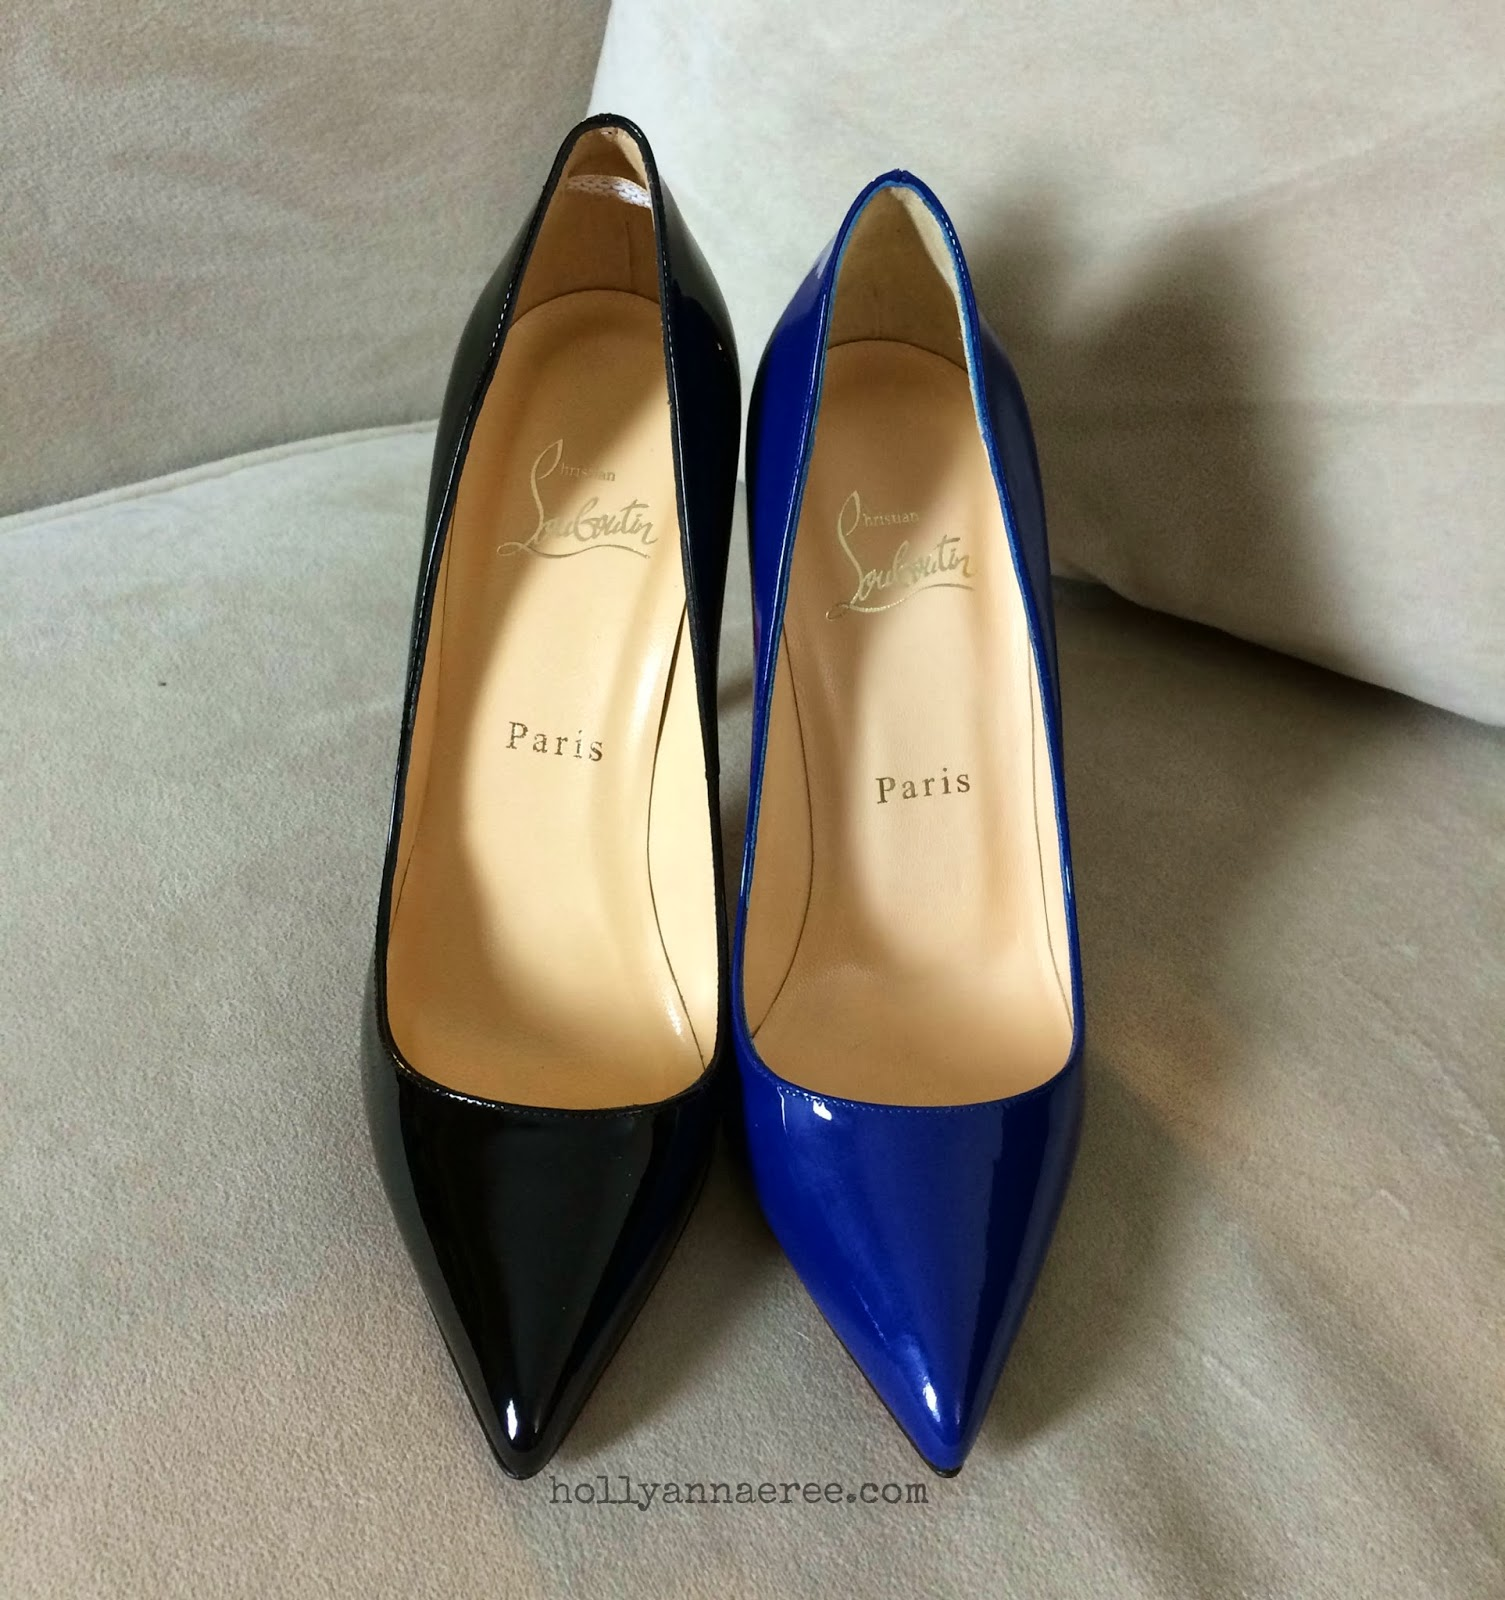 4fd28a31ddc4 Holly Ann-AeRee 2.0  Changes to the Christian Louboutin Pigalle ...